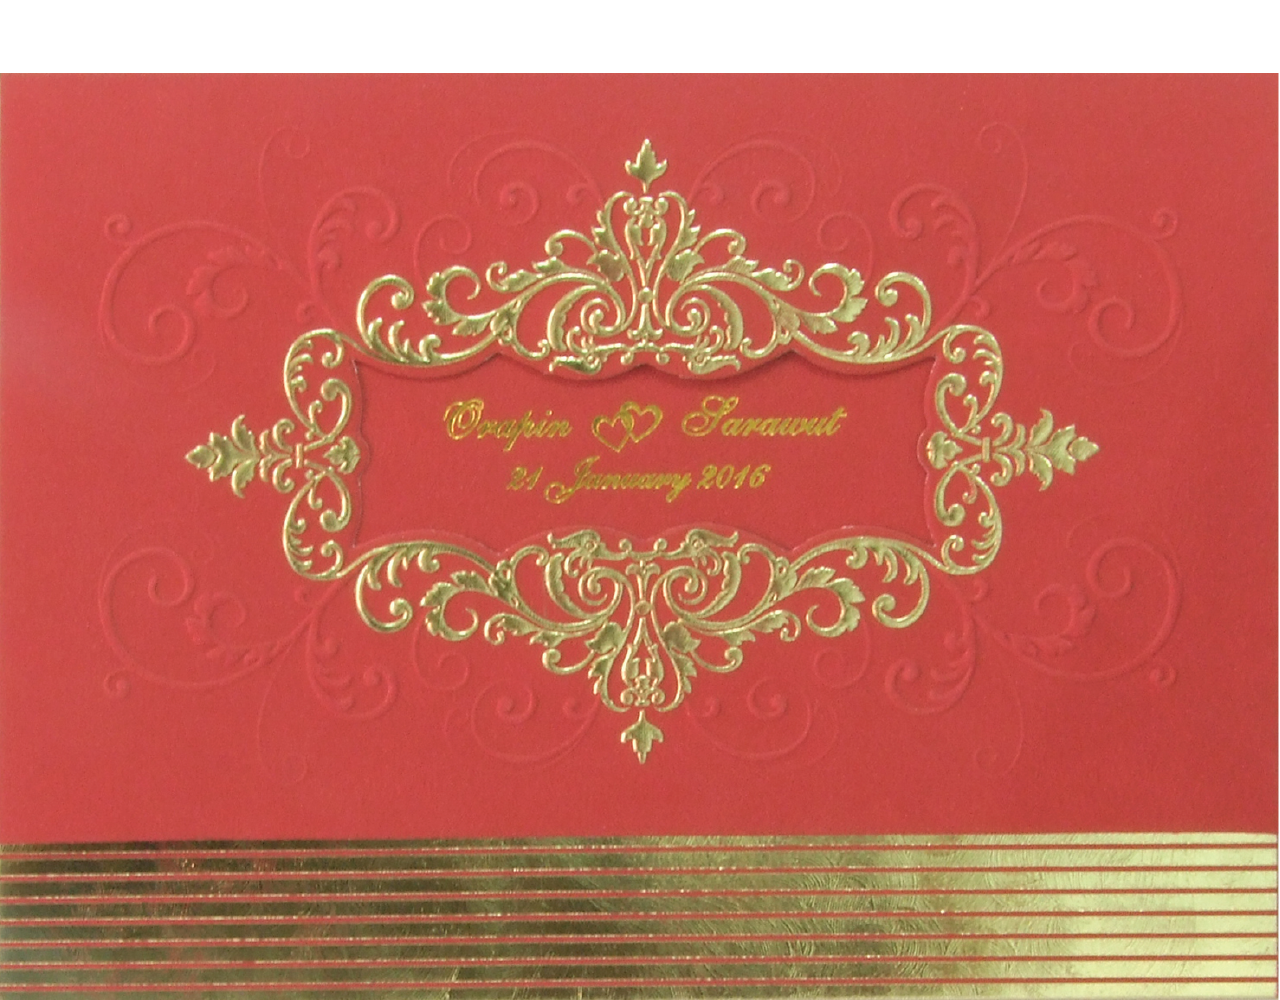 Wedding Card WC5851 [Red] - WEDDING INVITATIONS CARDS | By Gracegreeting